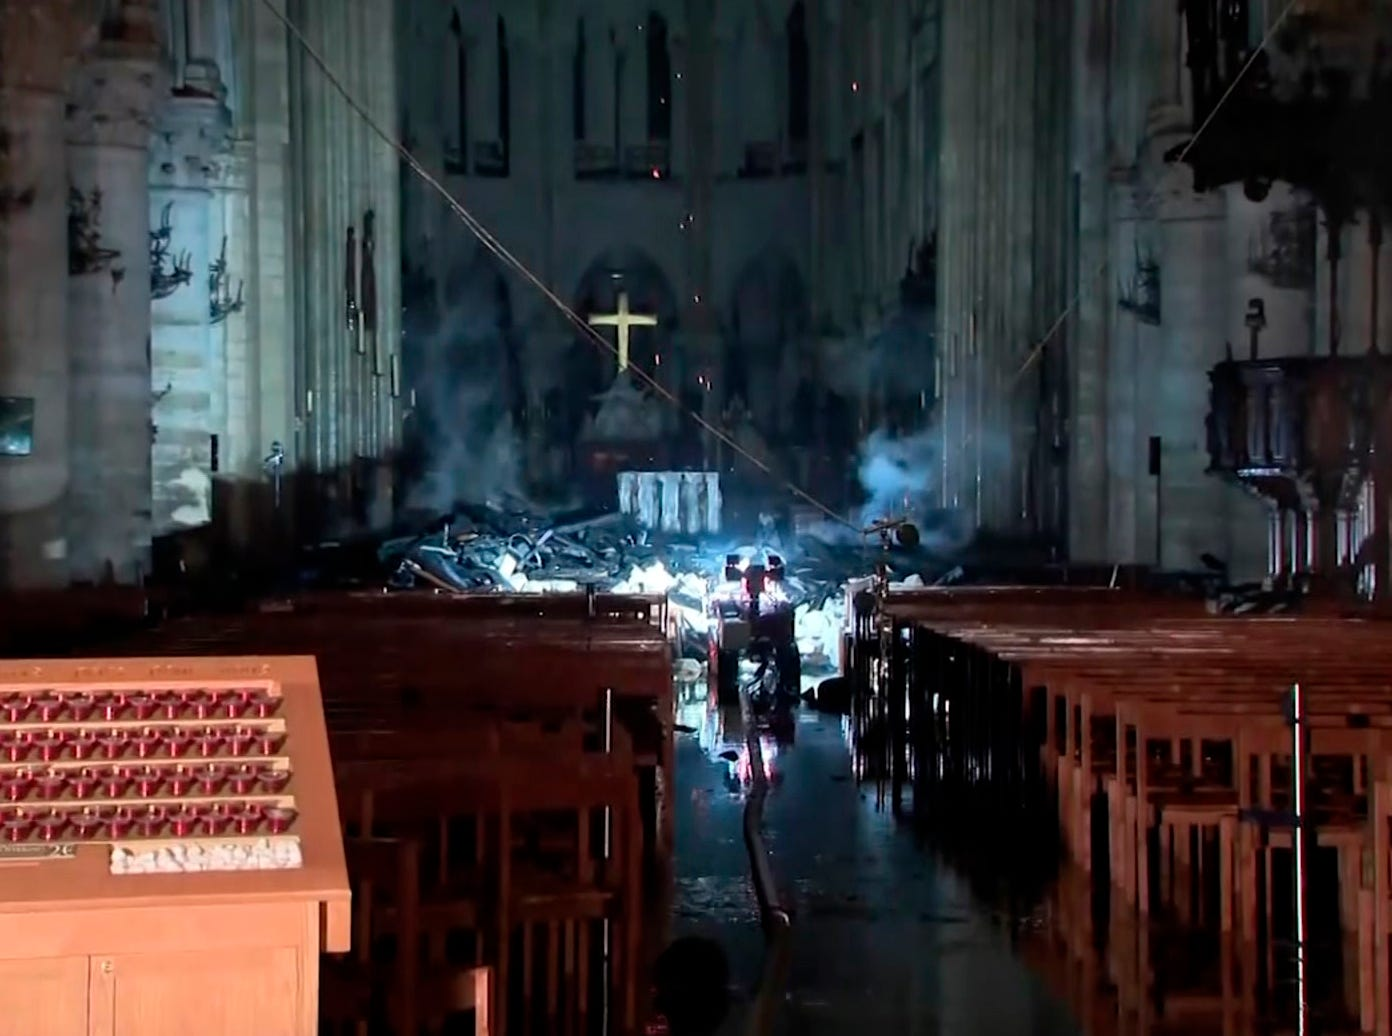 This image taken from France Televisions video shows the fire damage inside the Notre Dame cathedral in Paris, Monday April 15, 2019.  Firefighters declared success Tuesday morning in an over 12-hour battle to extinguish an inferno engulfing Paris' iconic Notre Dame cathedral that claimed its spire and roof, but spared its bell towers. (France Televisions via AP)